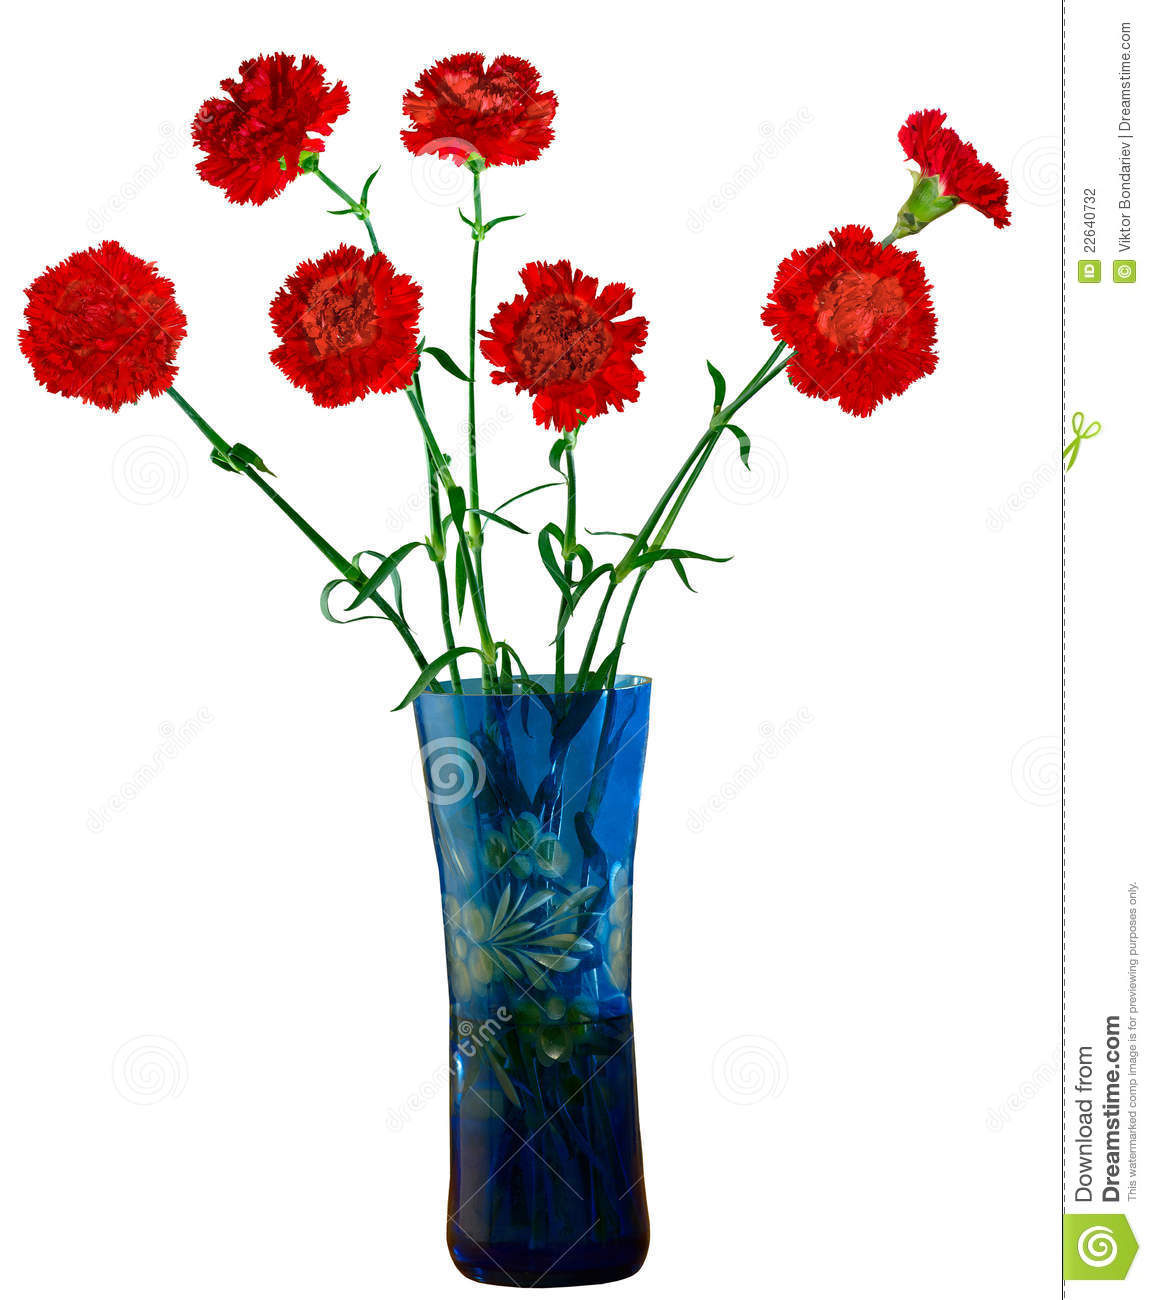 Flowers In A Vase Stock Photography Image 22640732